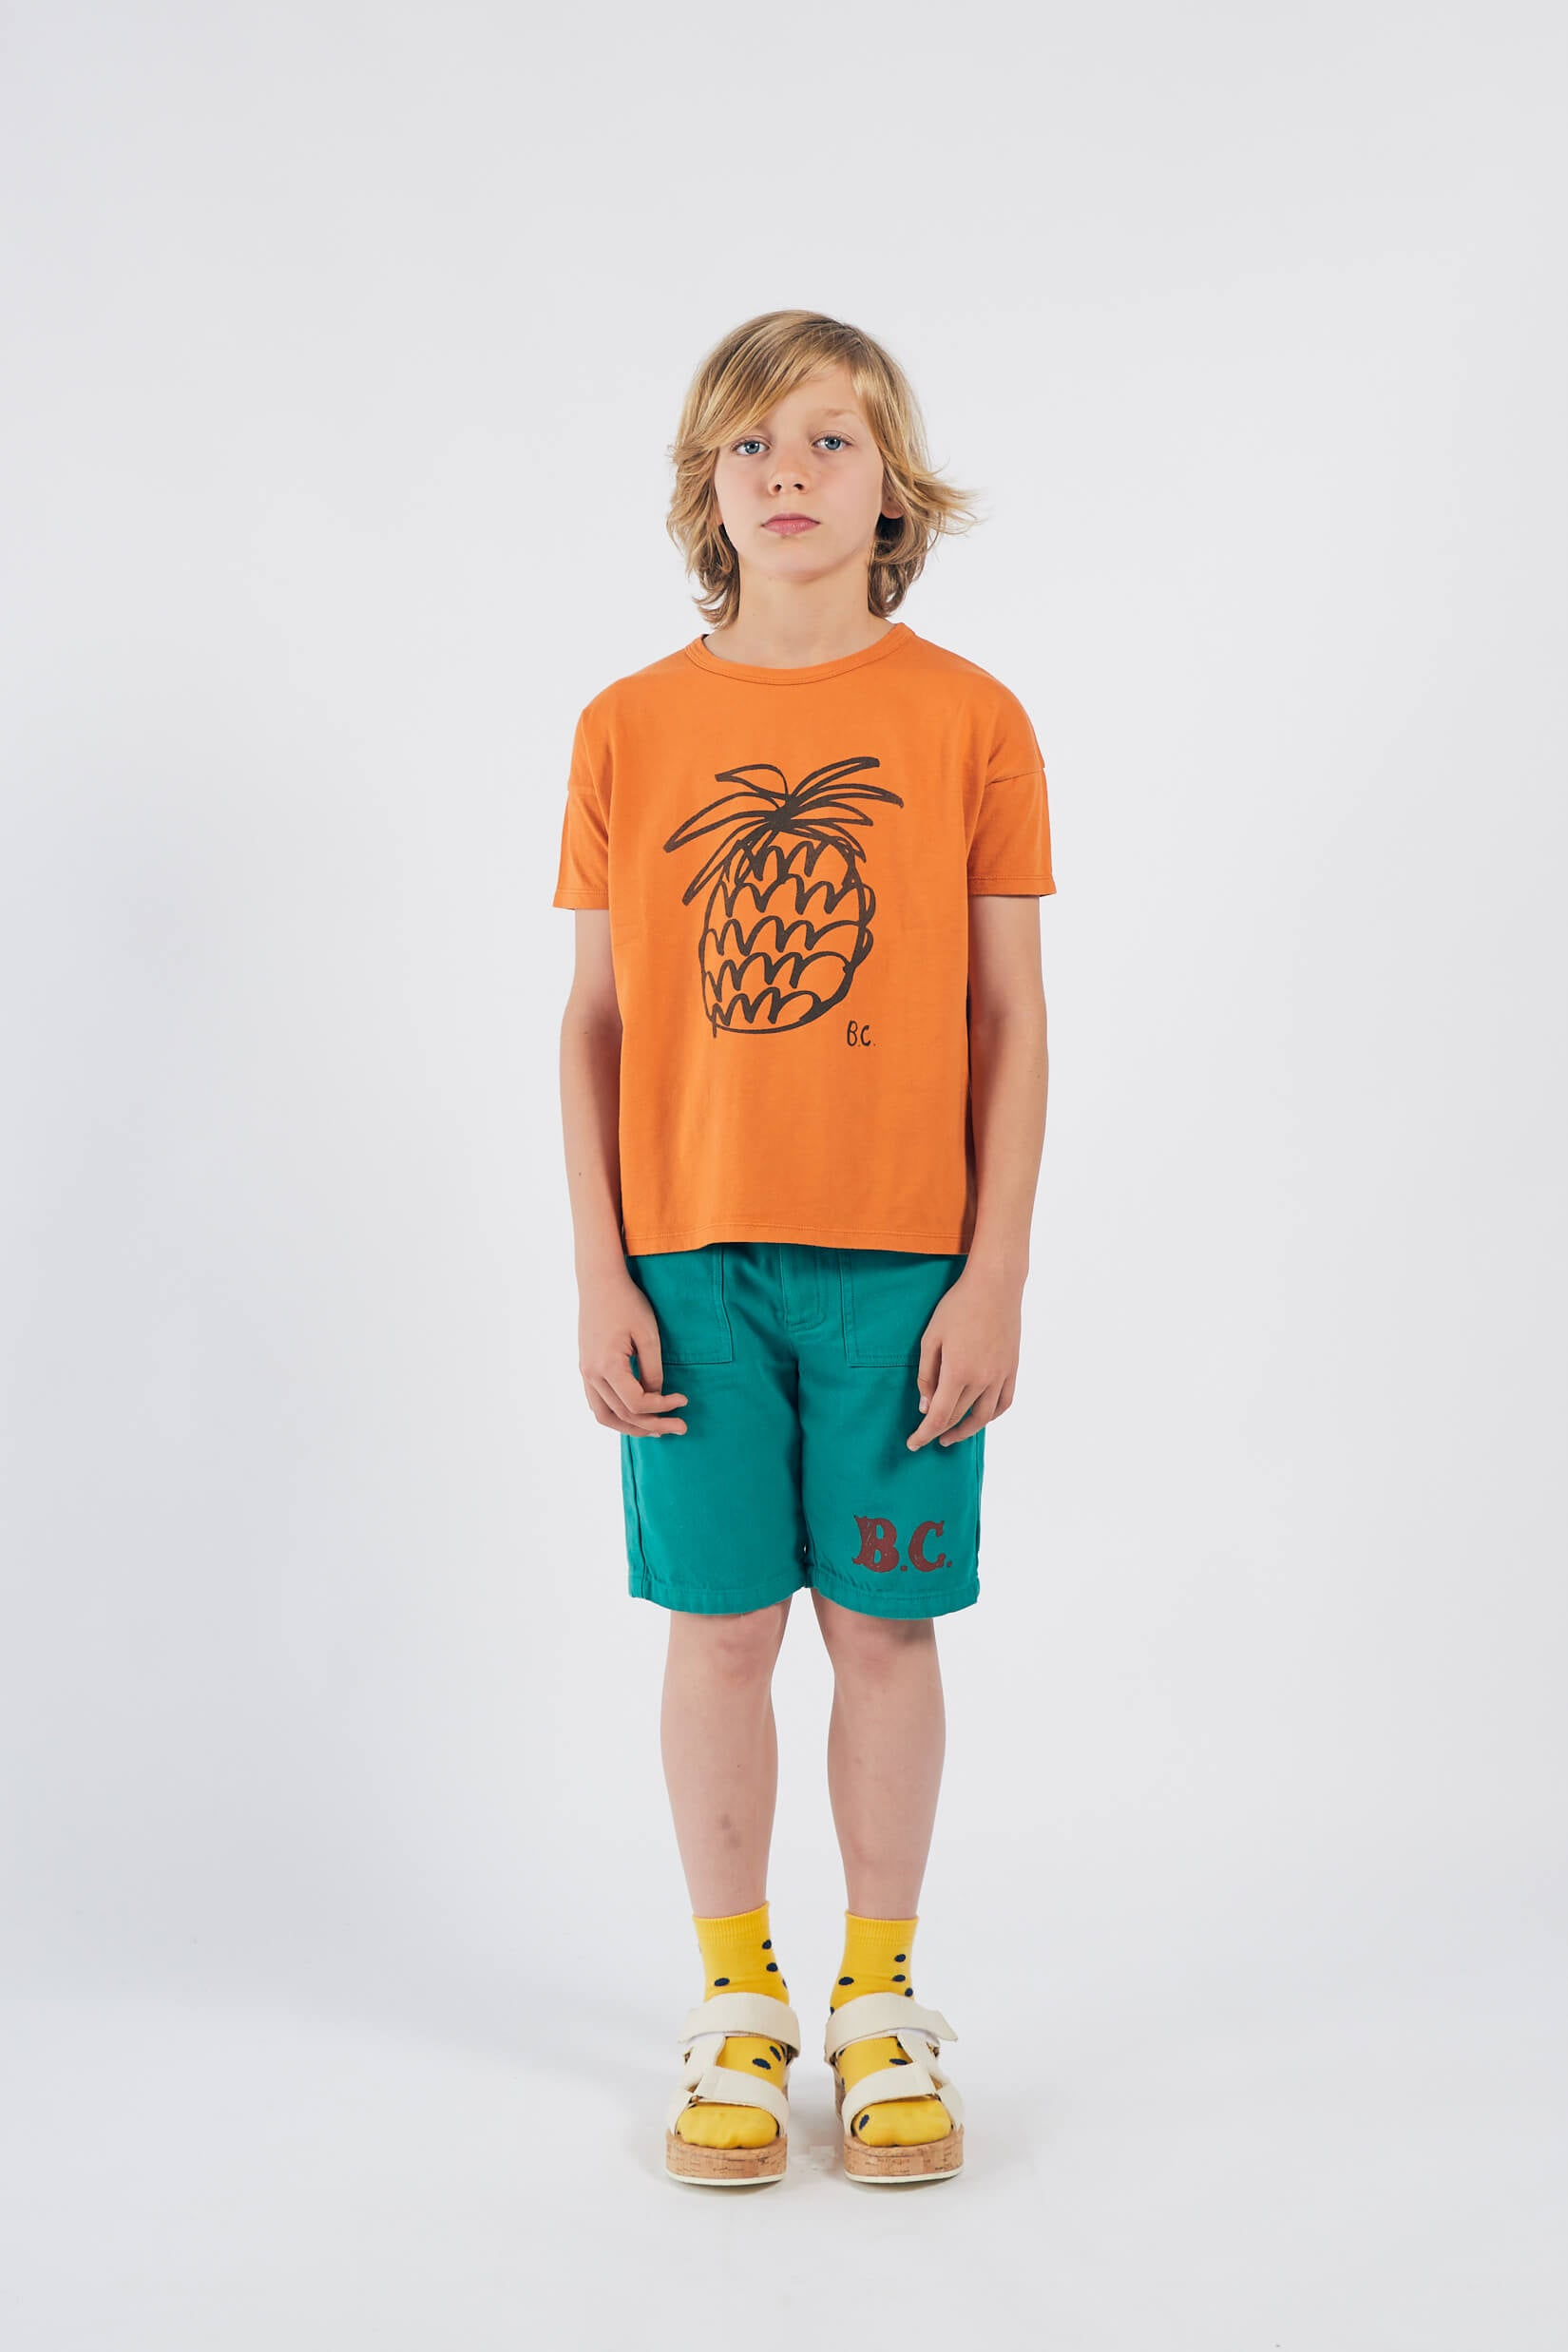 Bobo Choses Pineapple T-Shirt | Tiny People